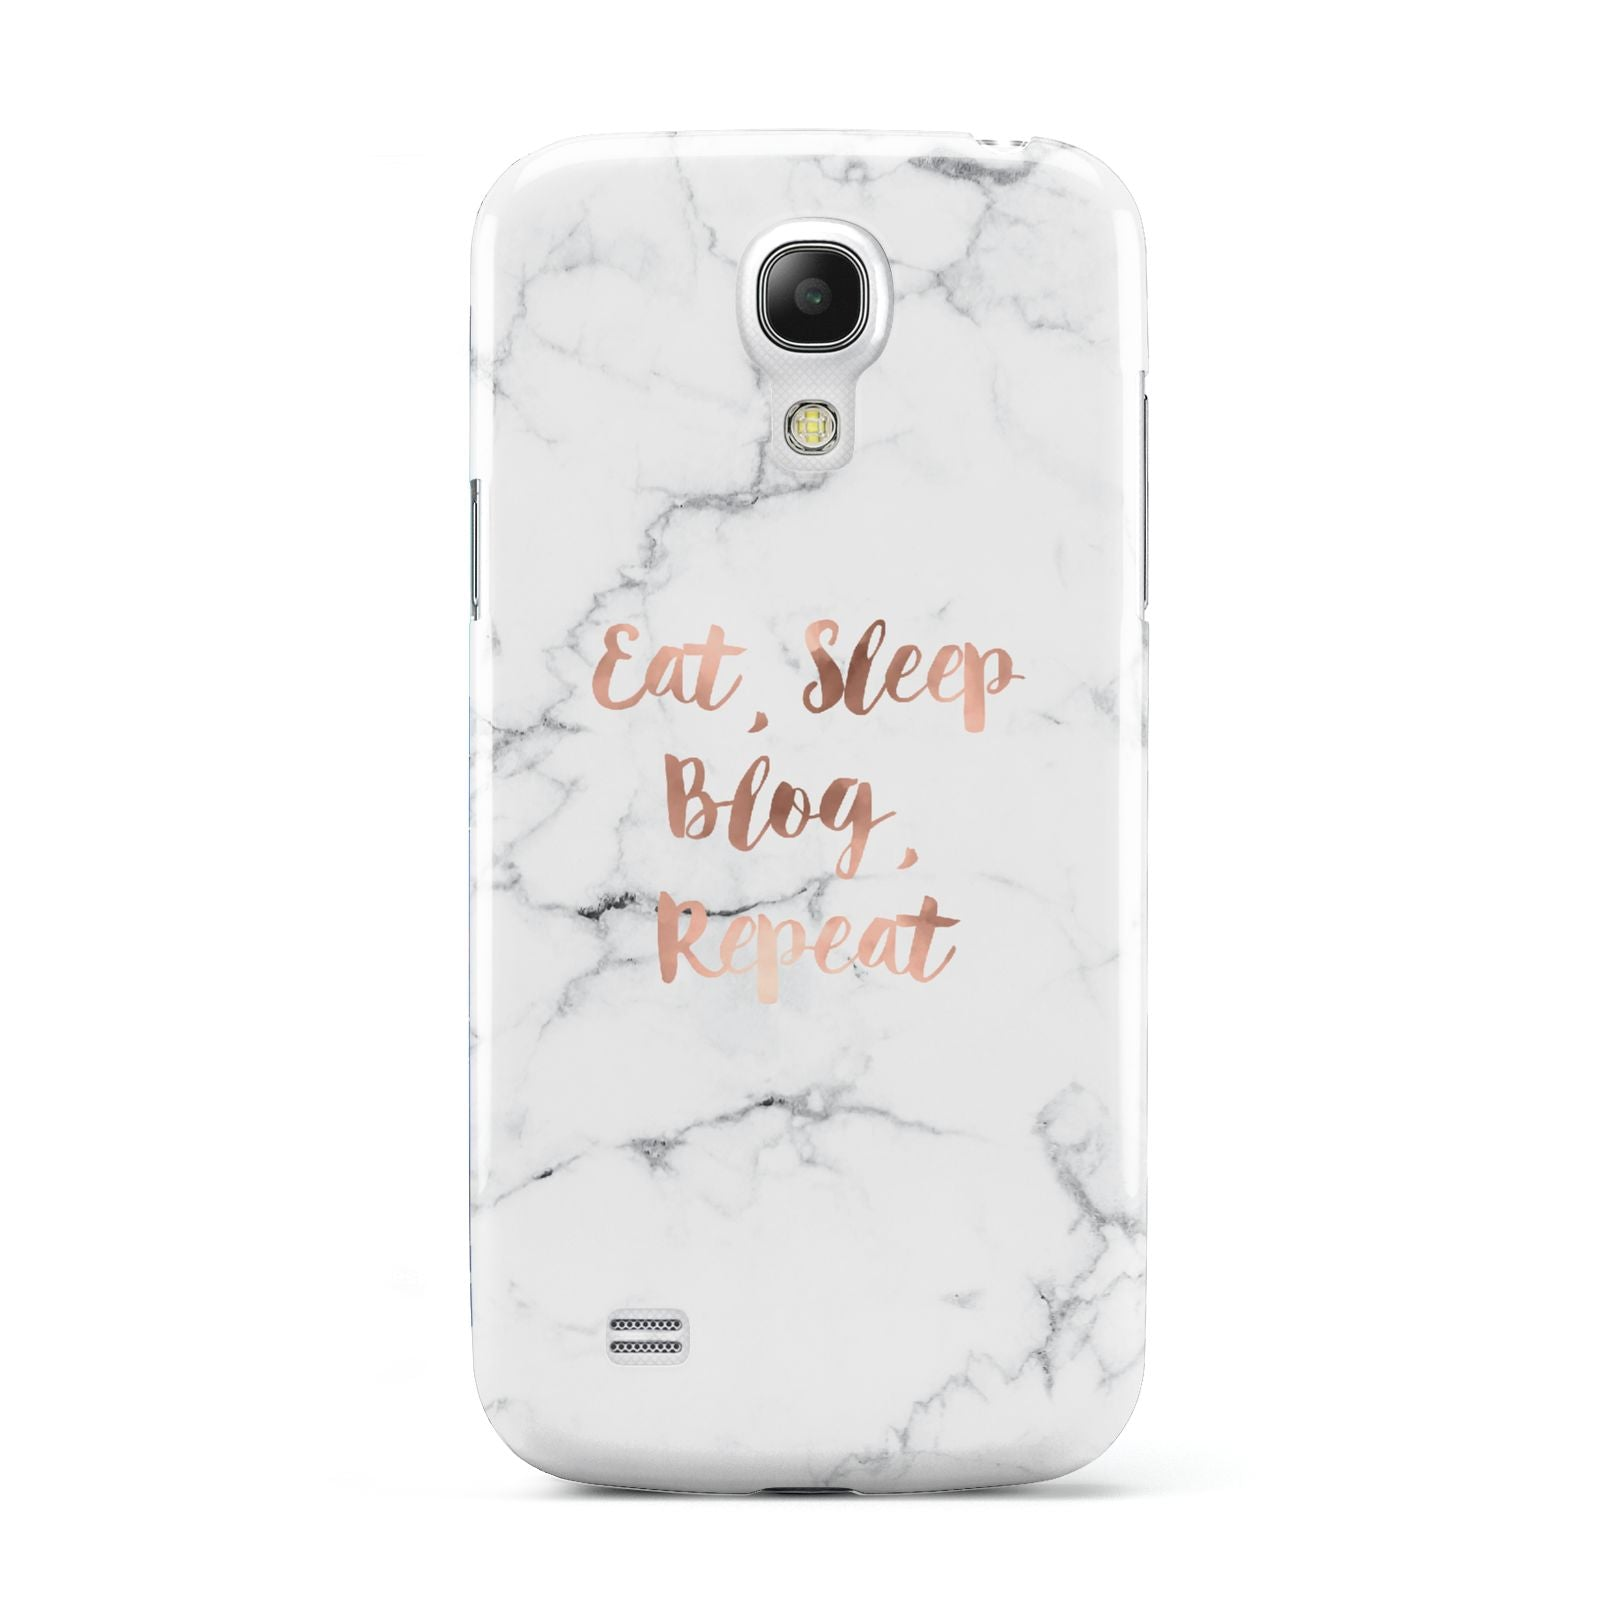 Eat Sleep Blog Repeat Marble Effect Samsung Galaxy S4 Mini Case